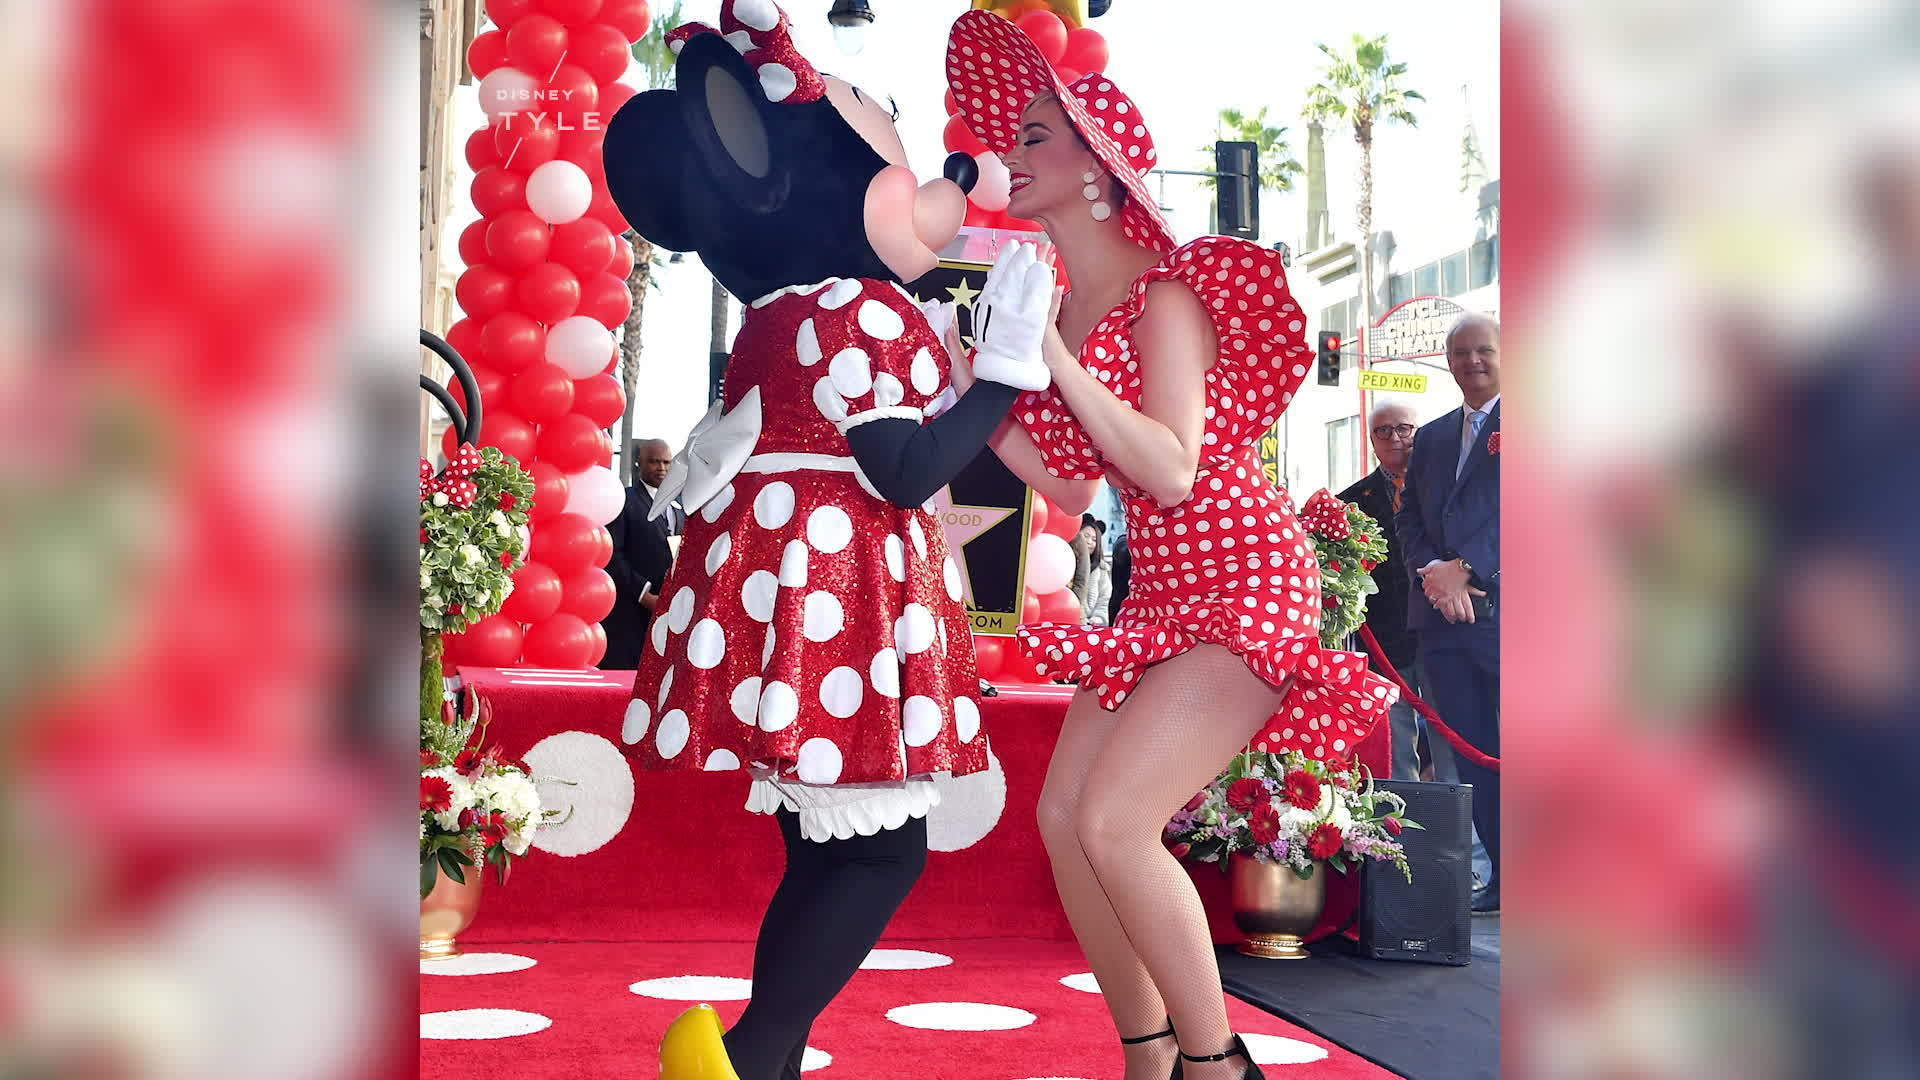 Katy Perry Gives Minnie Mouse Her Star on the Hollywood Walk of Fame